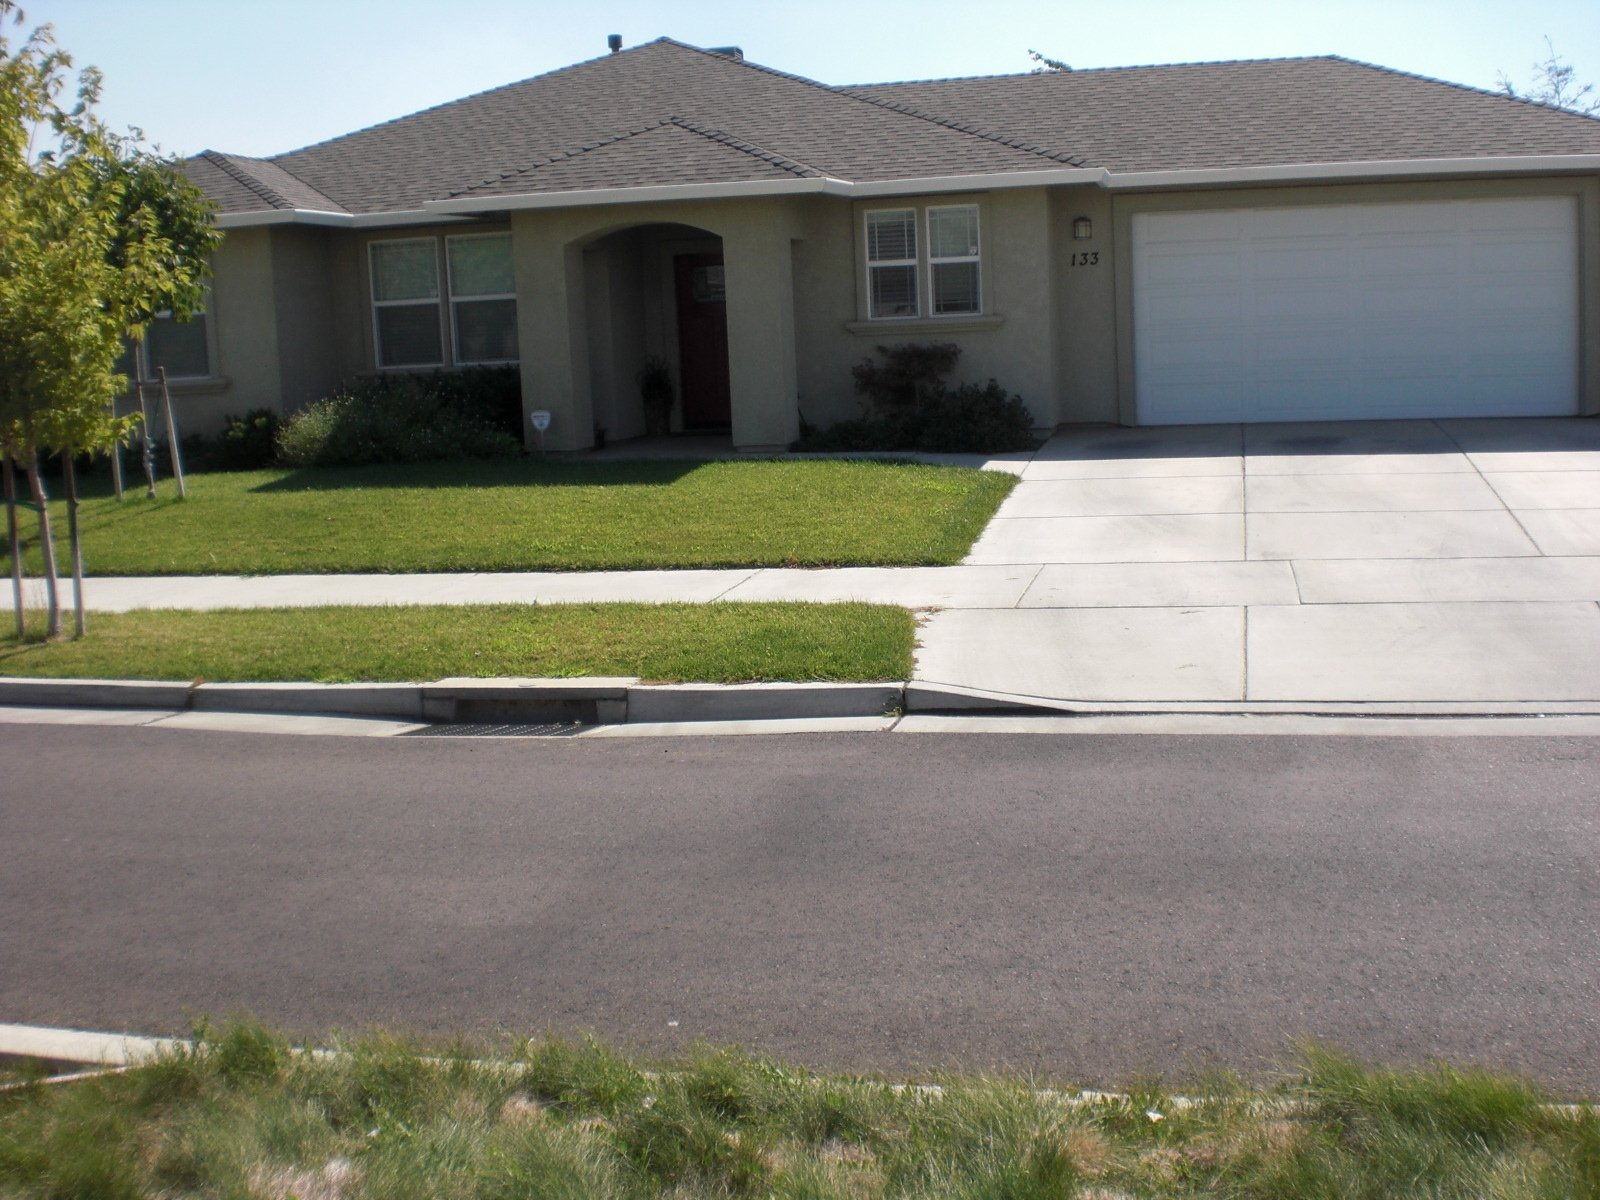 North Valley Raingutter Chico Ca Seamless Gutters